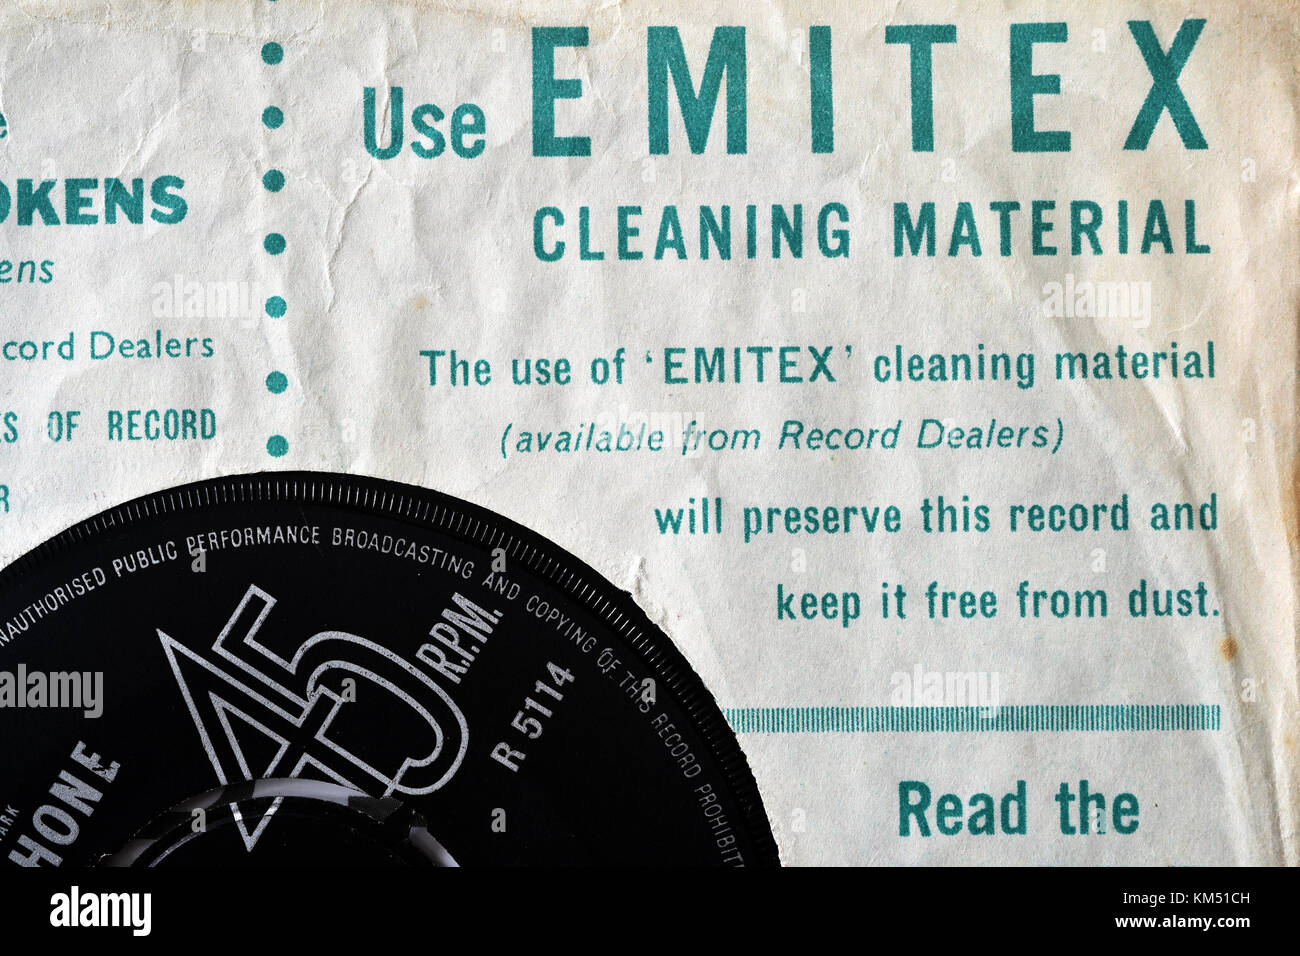 An advert for Emitex record cleaning material on an old record sleeve - Stock Image